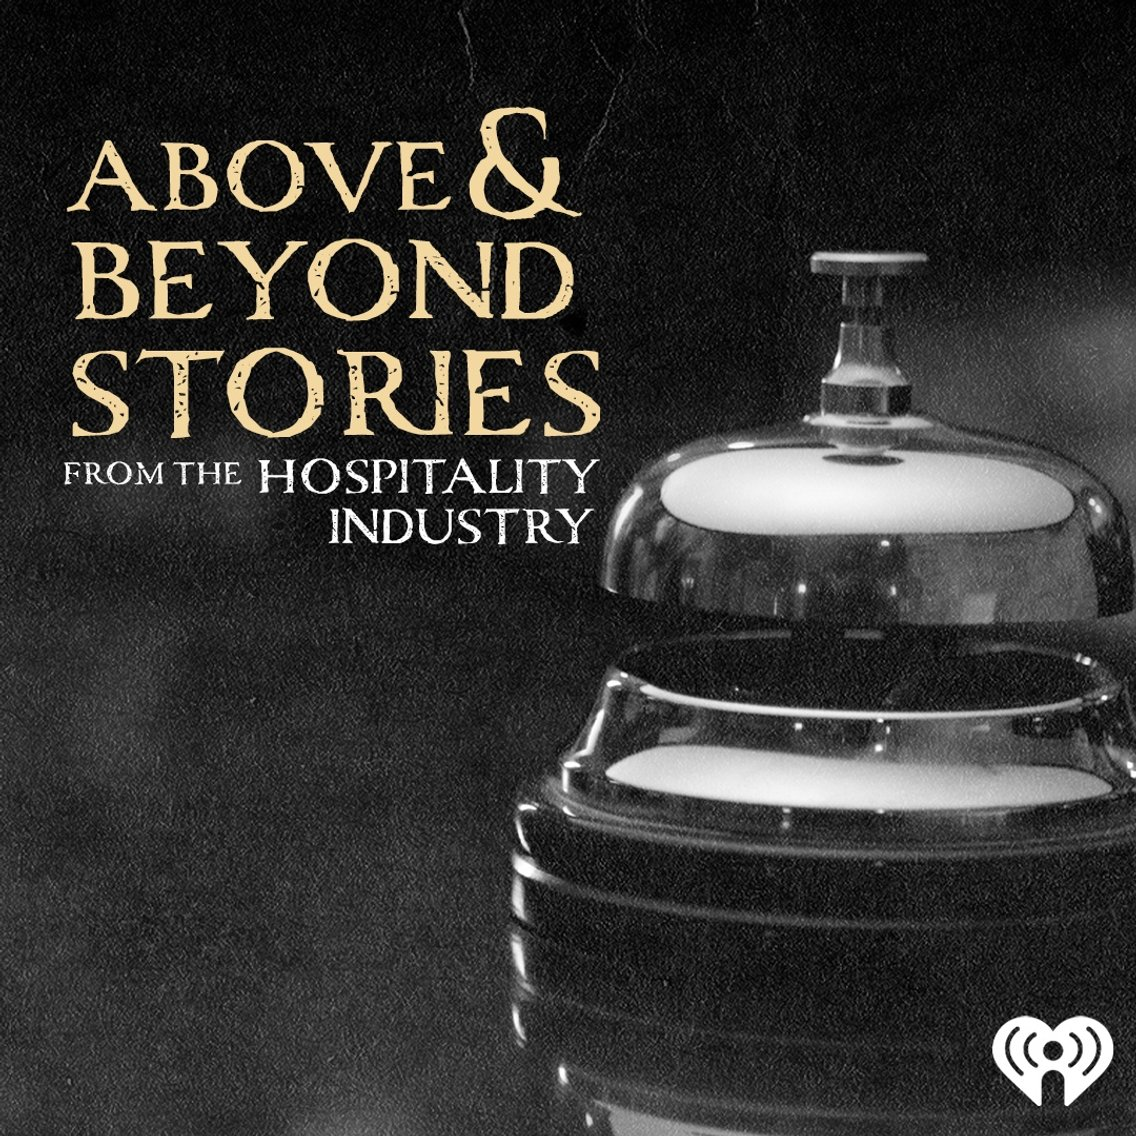 Above & Beyond Stories - Cover Image